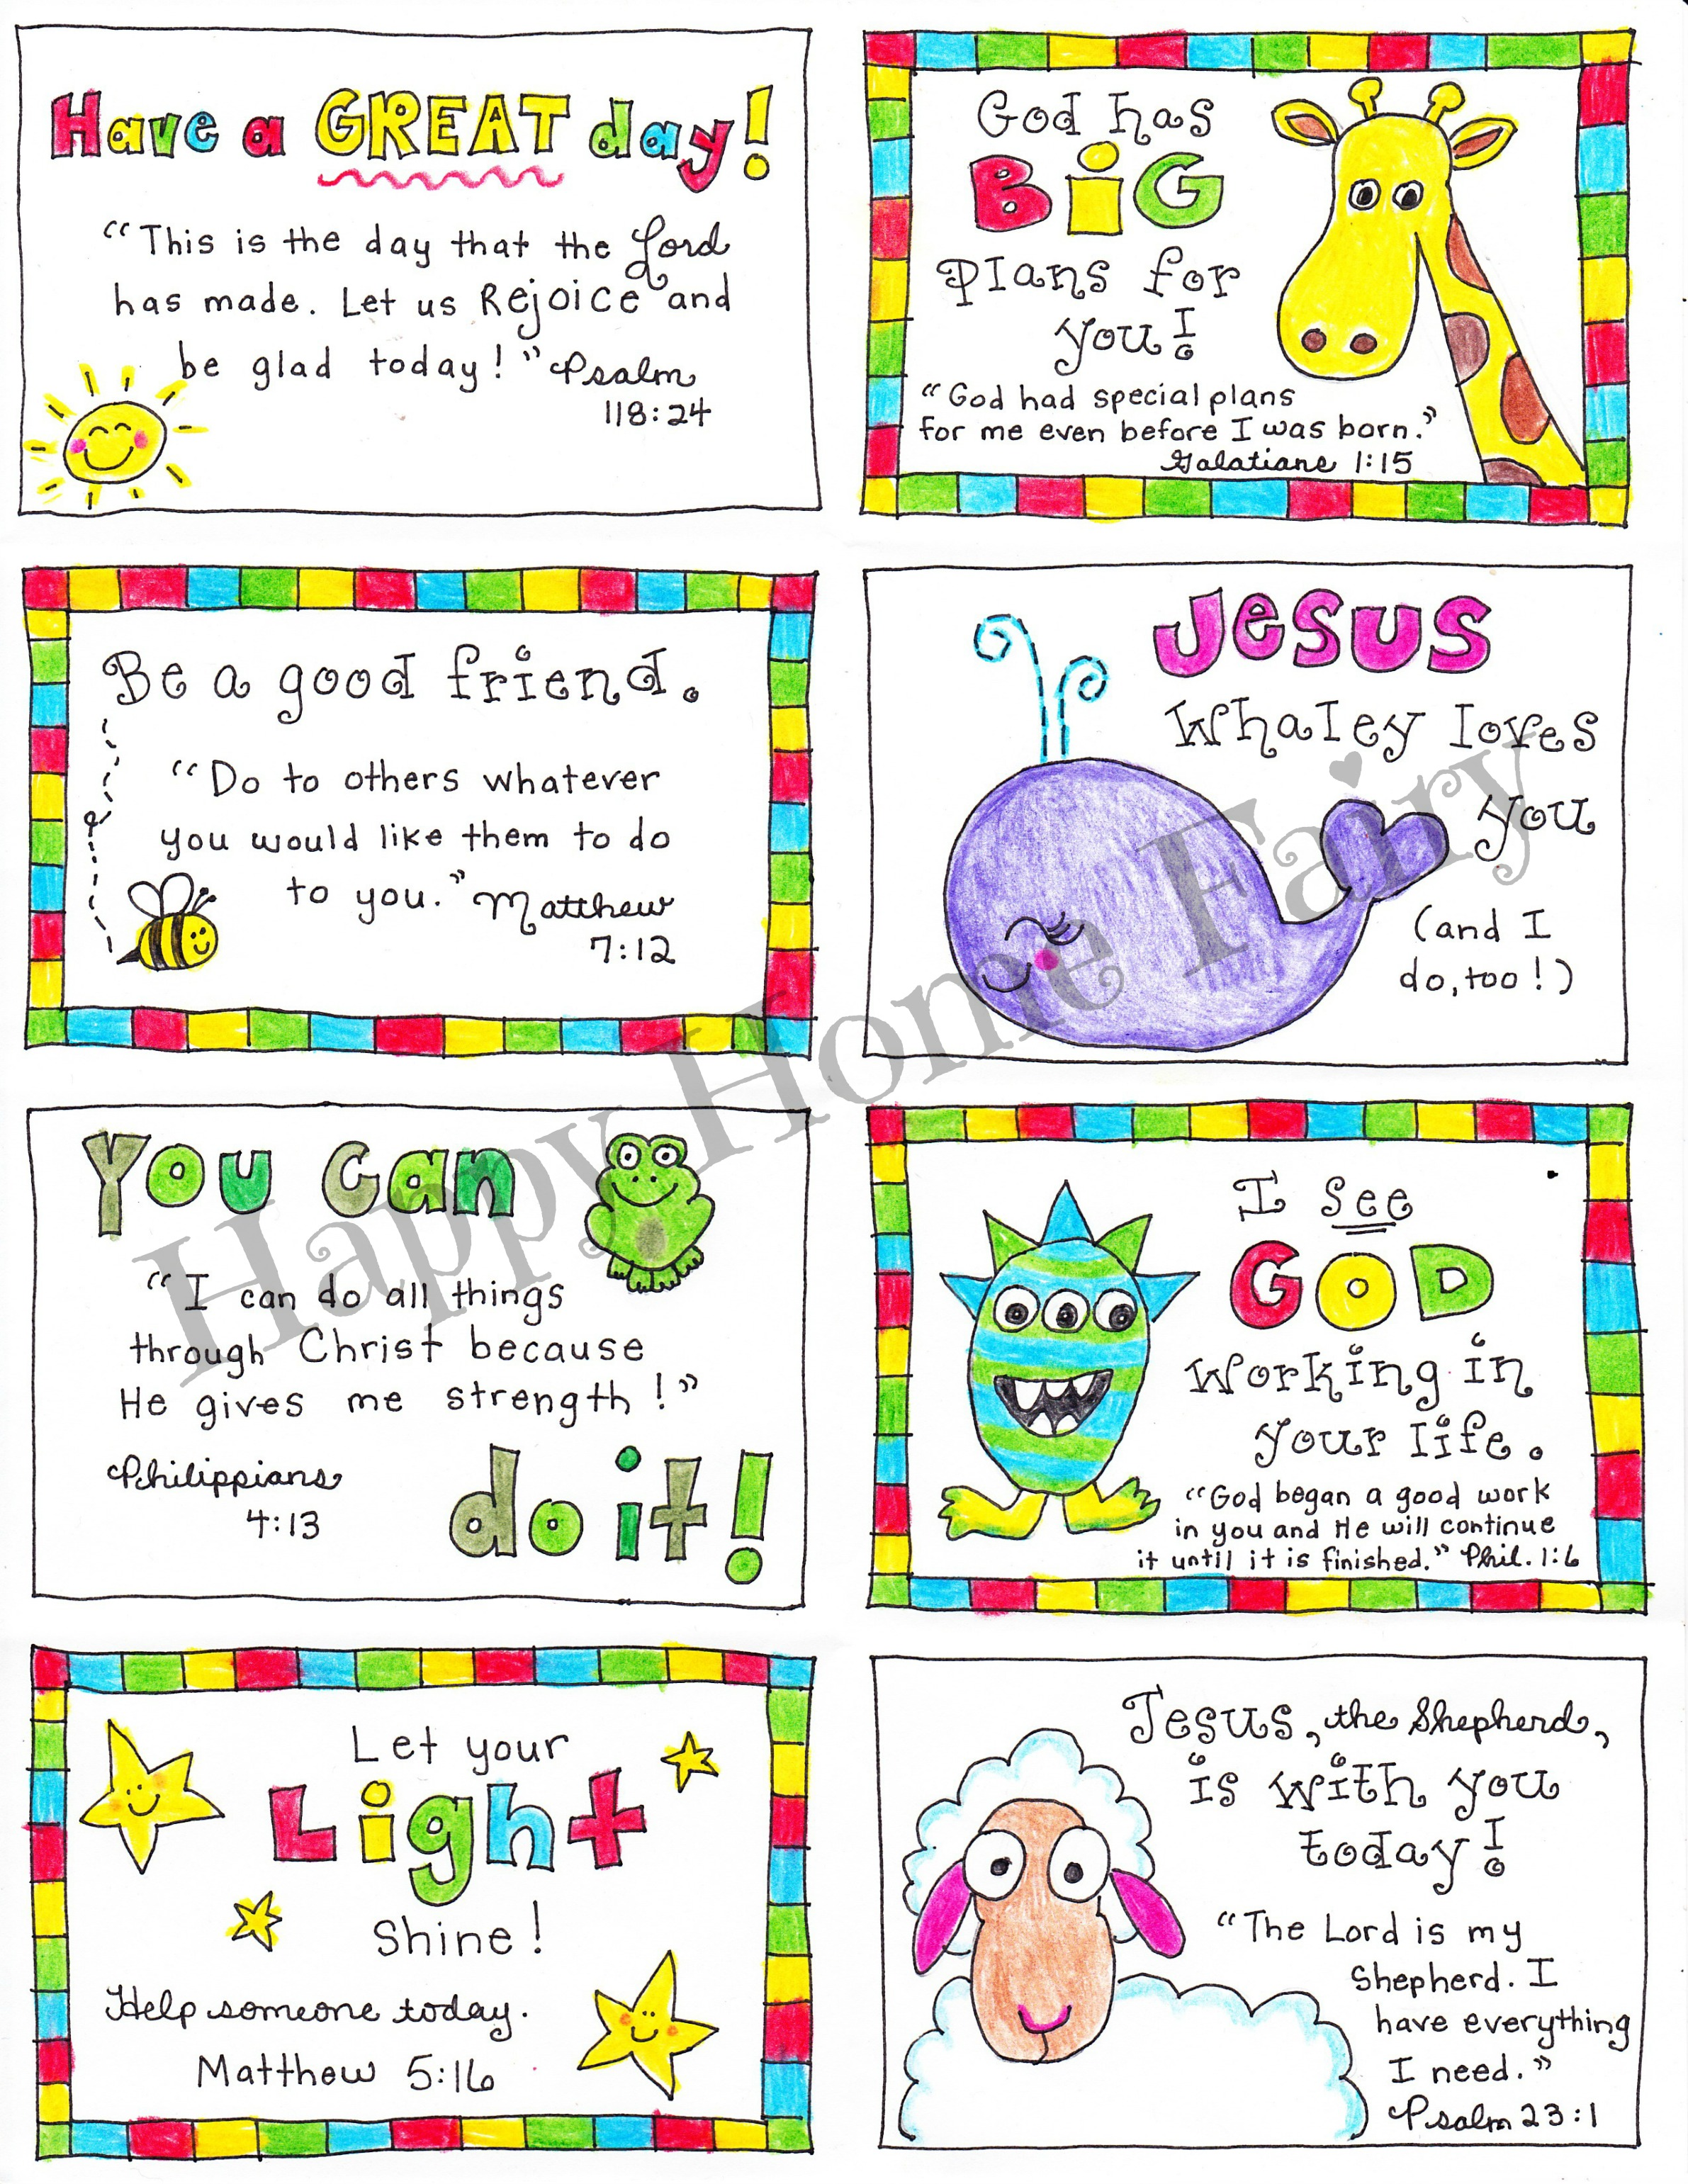 Inspirational Lunch Box Notes Printable